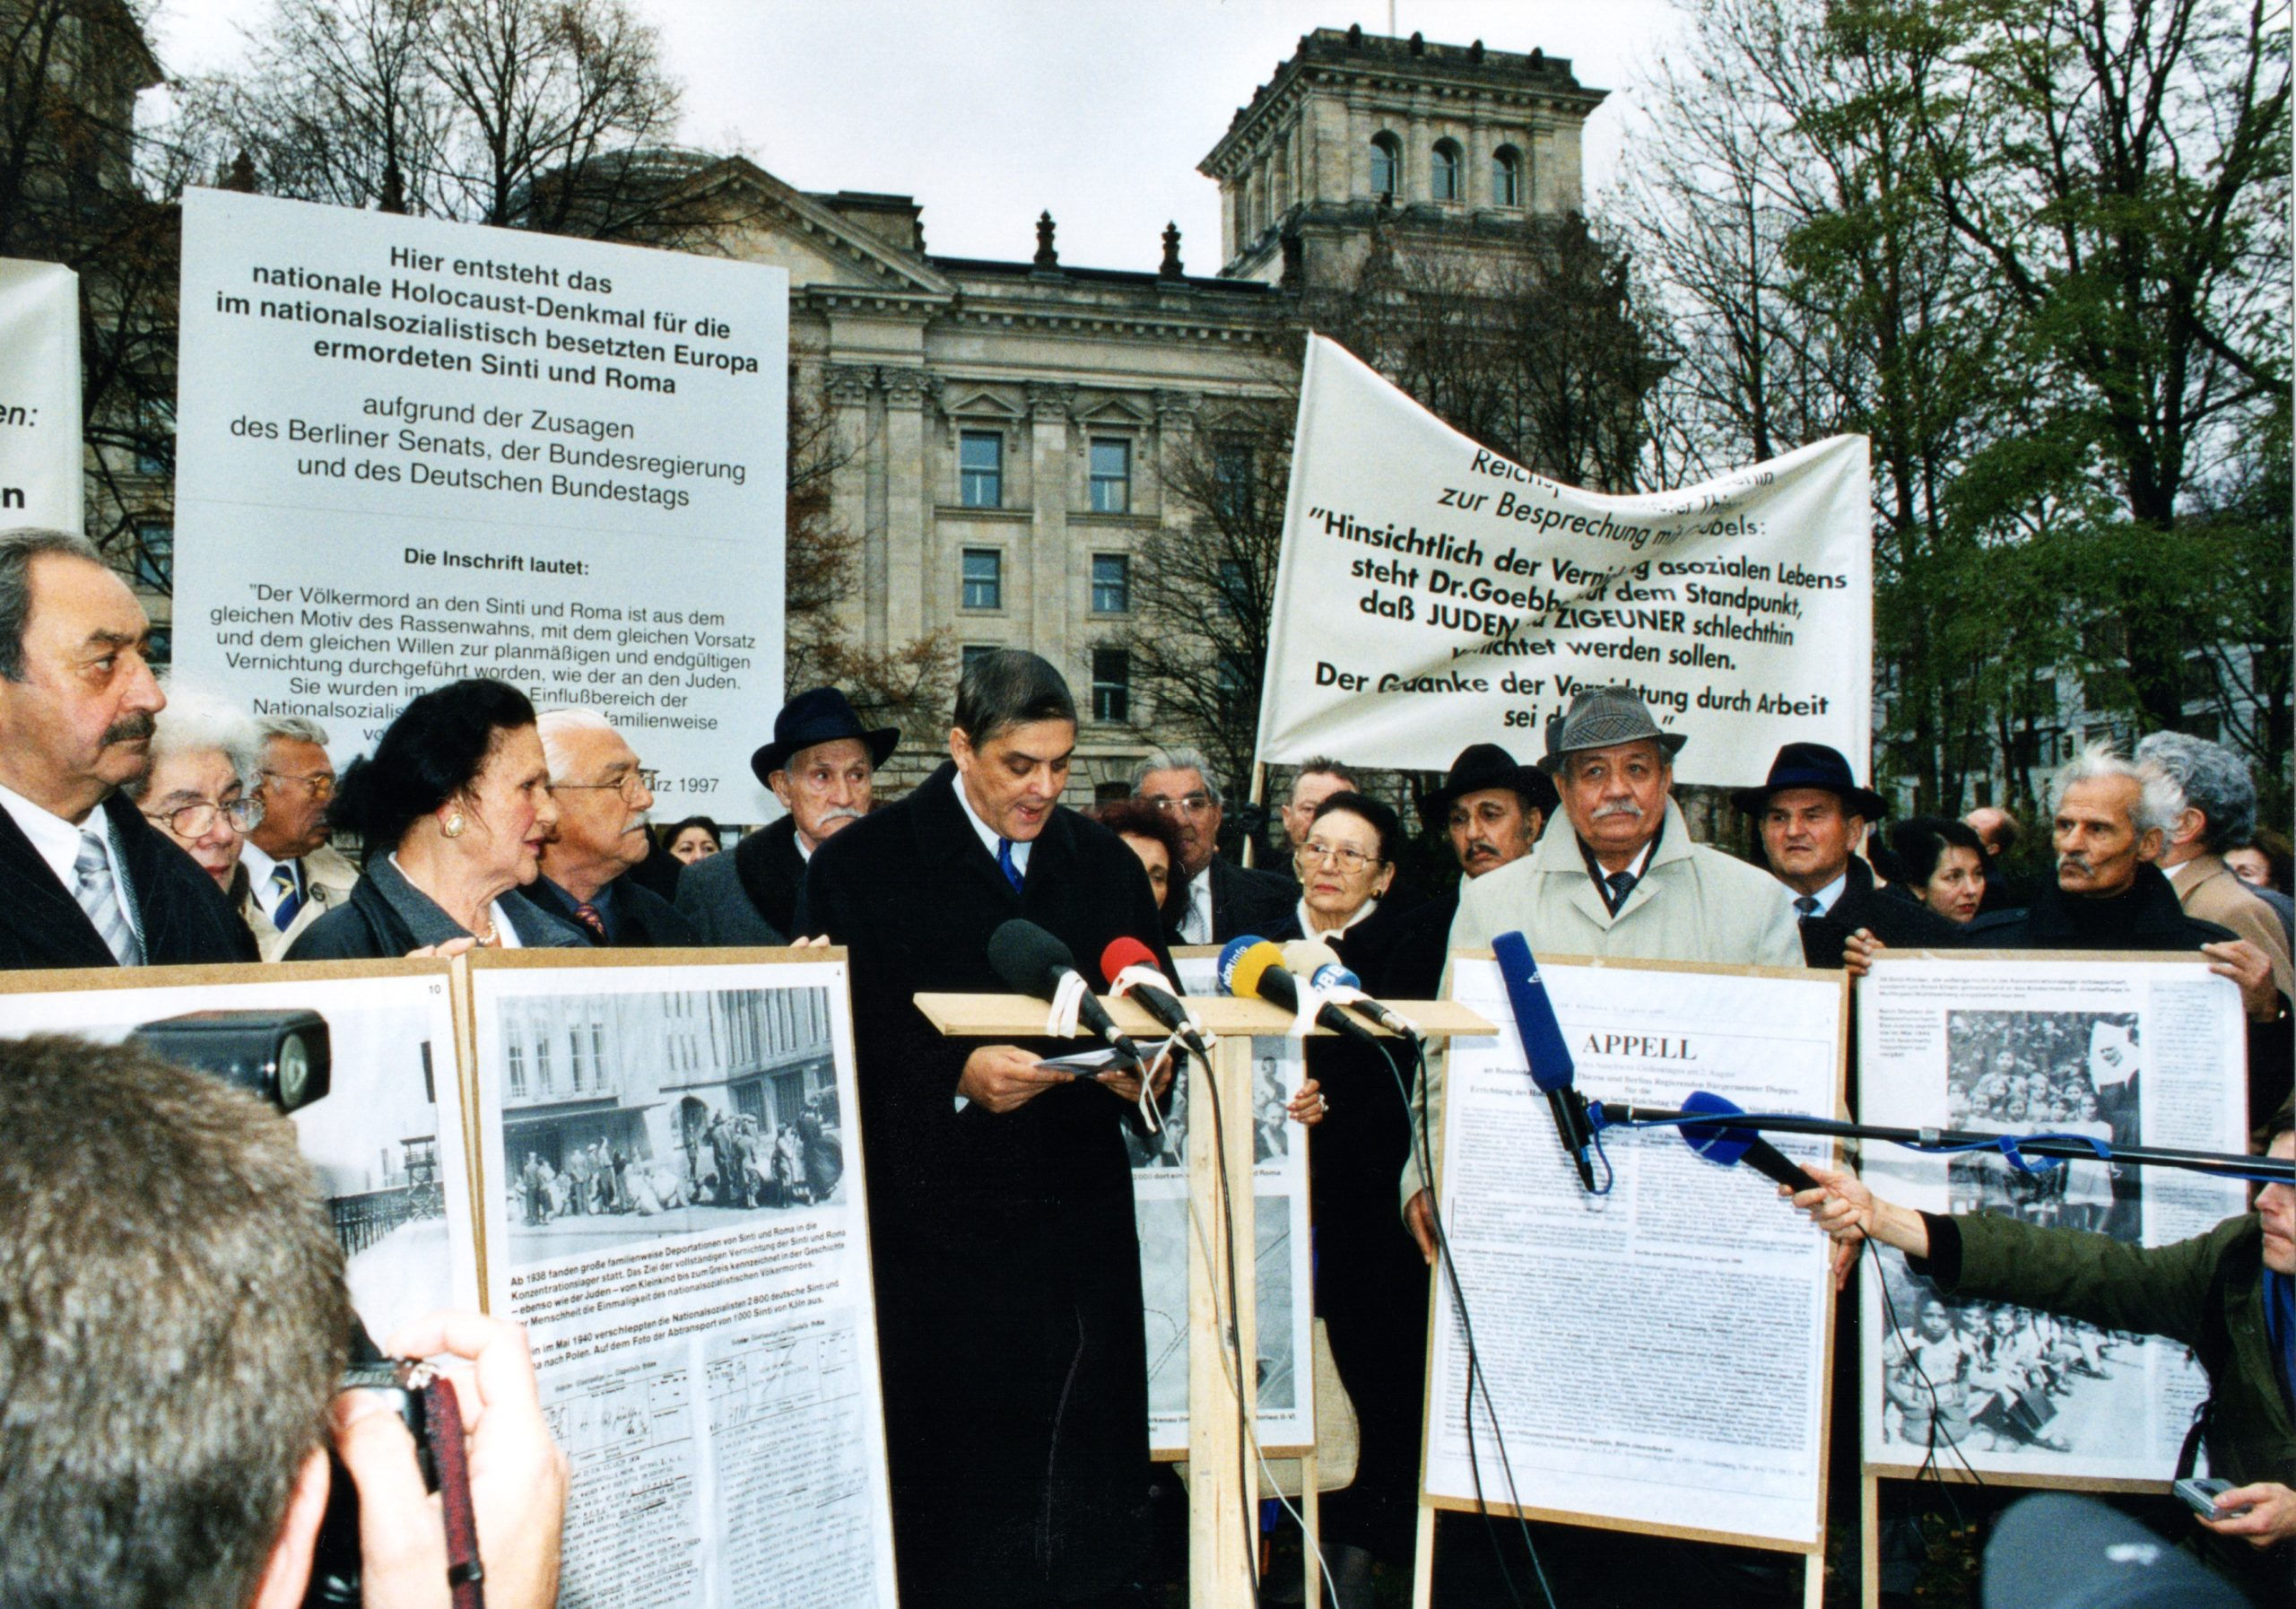 Demonstration for the establishment of the Memorial to the Sinti and Roma of Europe Murdered under the National Socialist Regime, November 2003